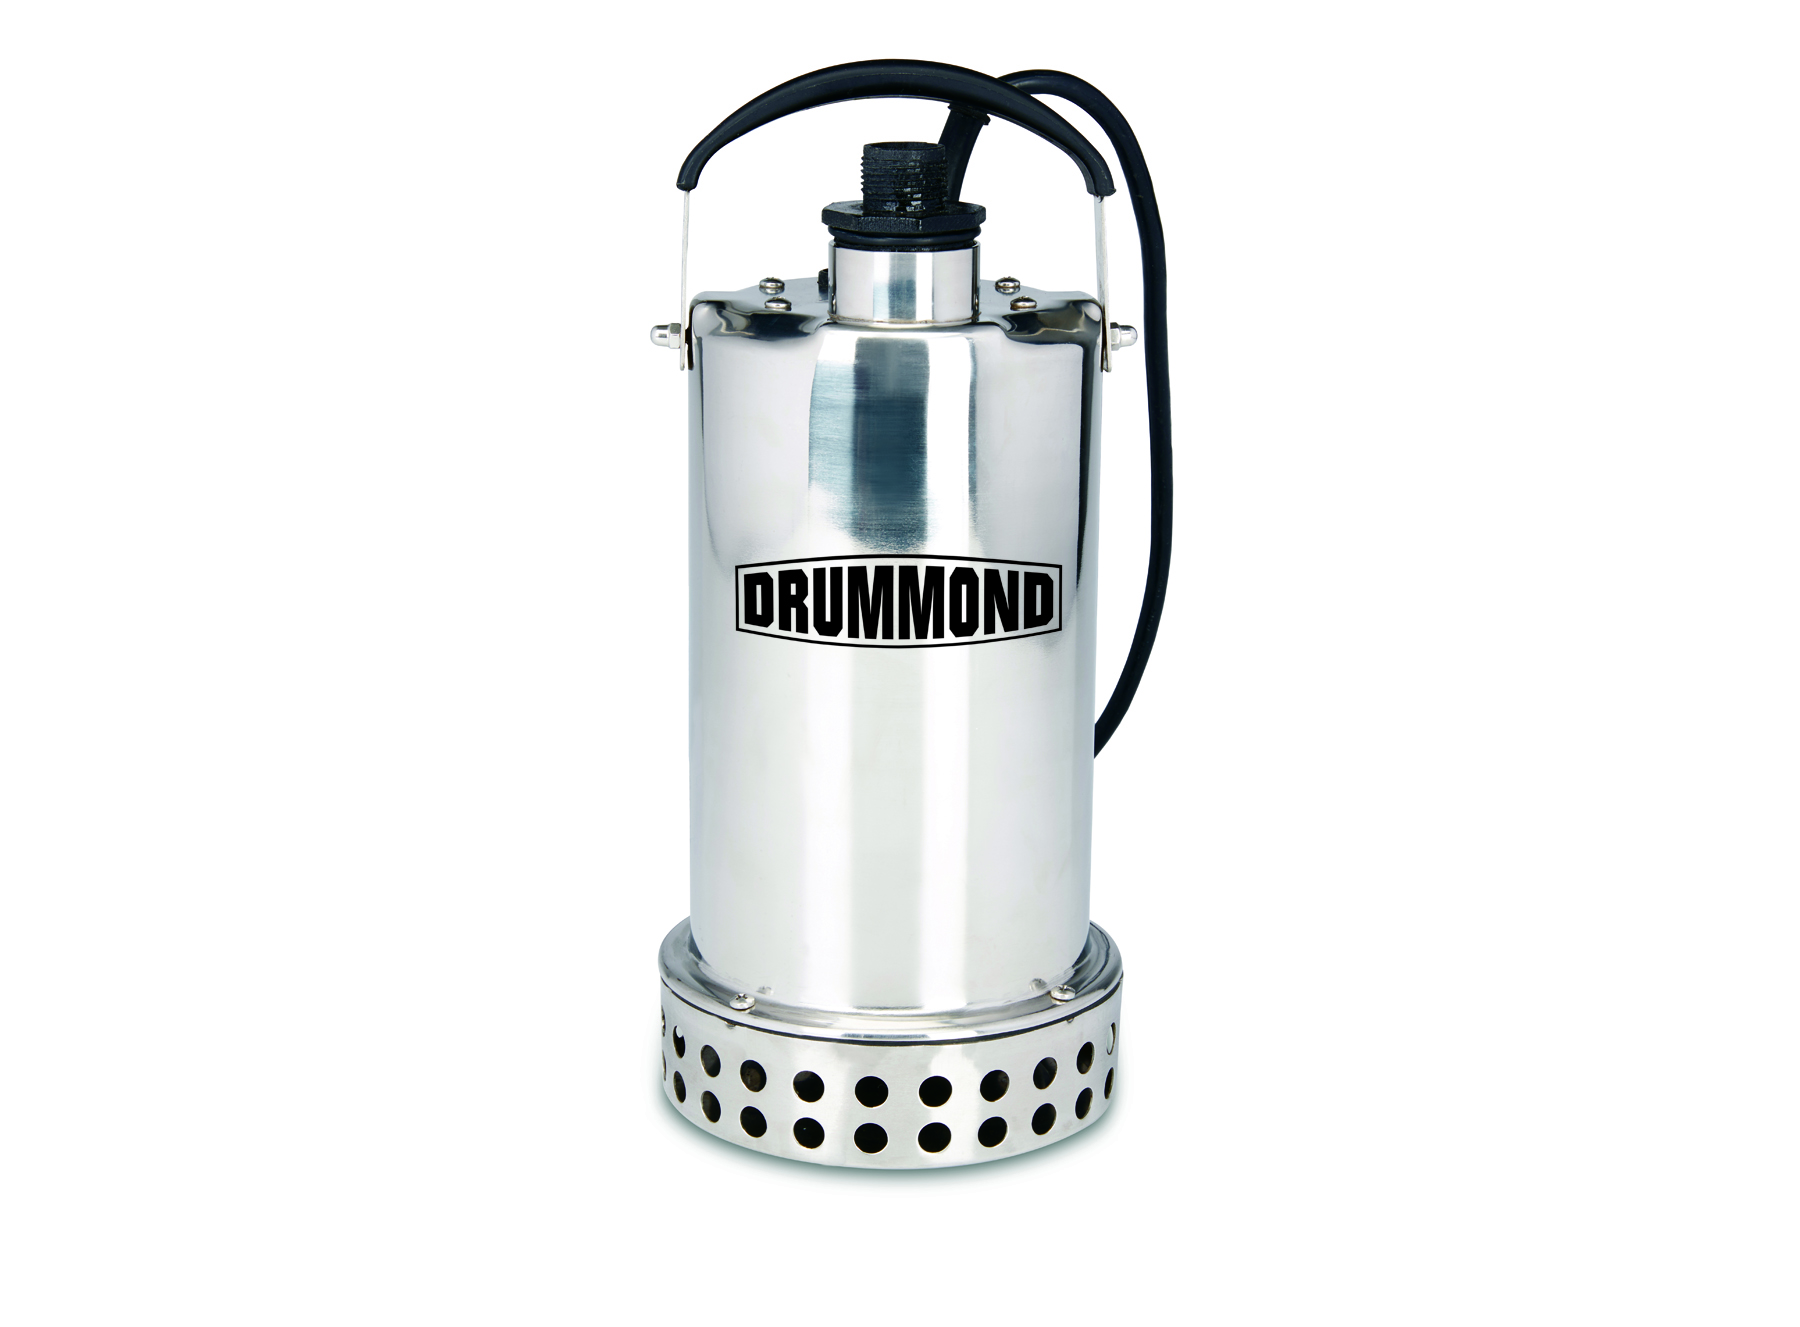 4 Hp Submersible Stainless Steel Ceramic Tile Utilitech 3 Wire 10gpm 1 2 Well Pump And Control Box Deep 7 Gpm Wqp